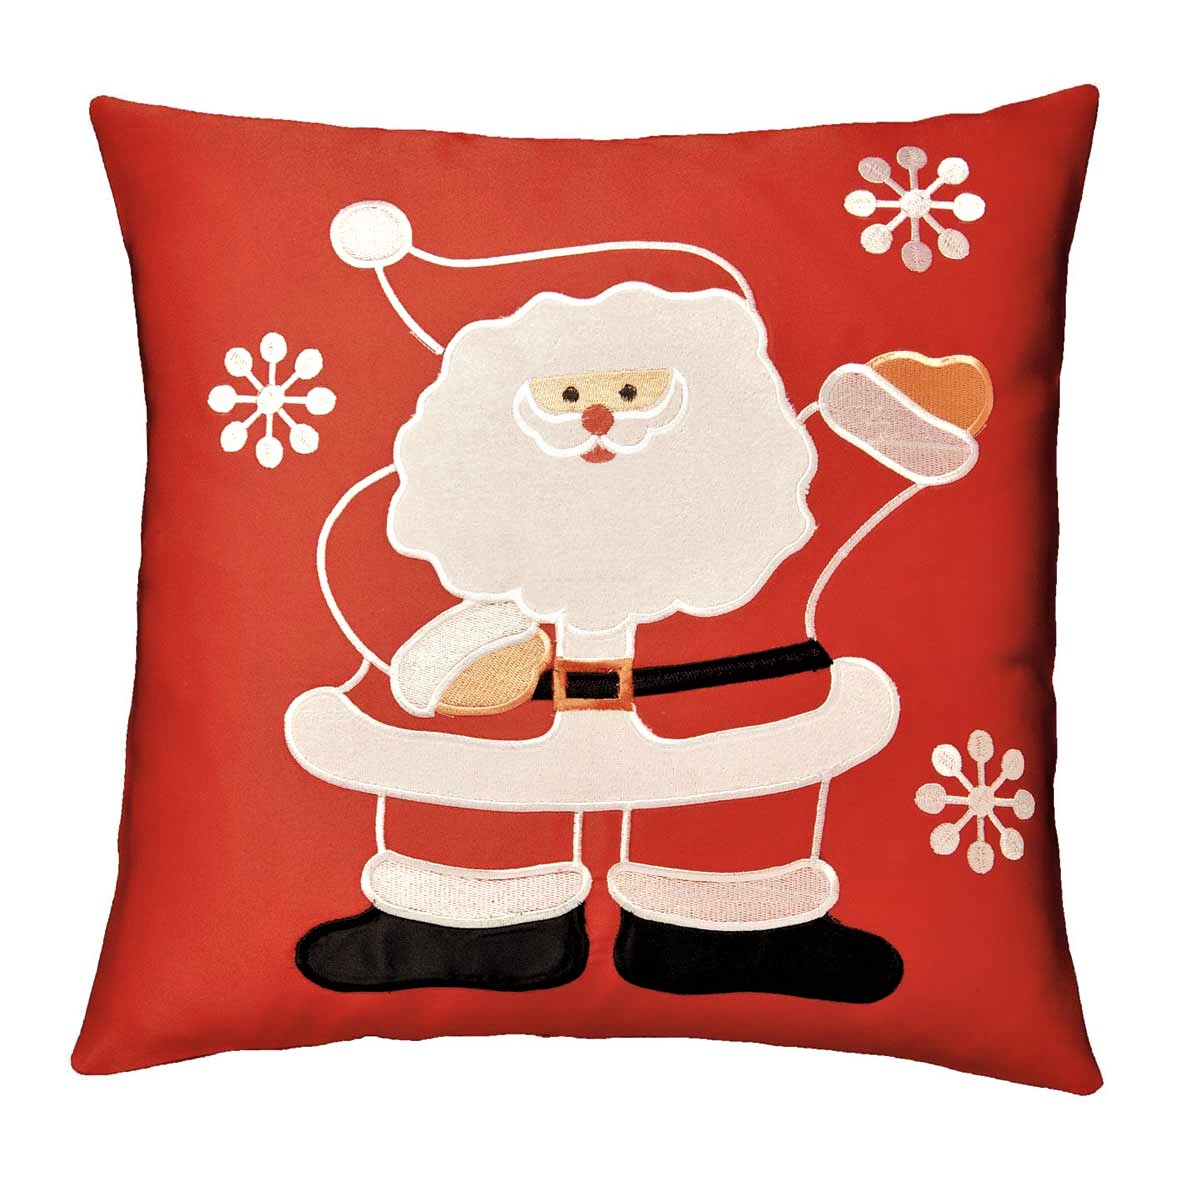 Christmas Xmas Linen Cushion Cover Throw Pillow Case Home Decor Festive Gift. $ Buy It Now. Free Shipping. + watching | + sold; 1 x pillow case (pillow inner is not included). Material: cotton linen. A good gift for your friend, or a good choice for your collection. The pattern is only on the front side.